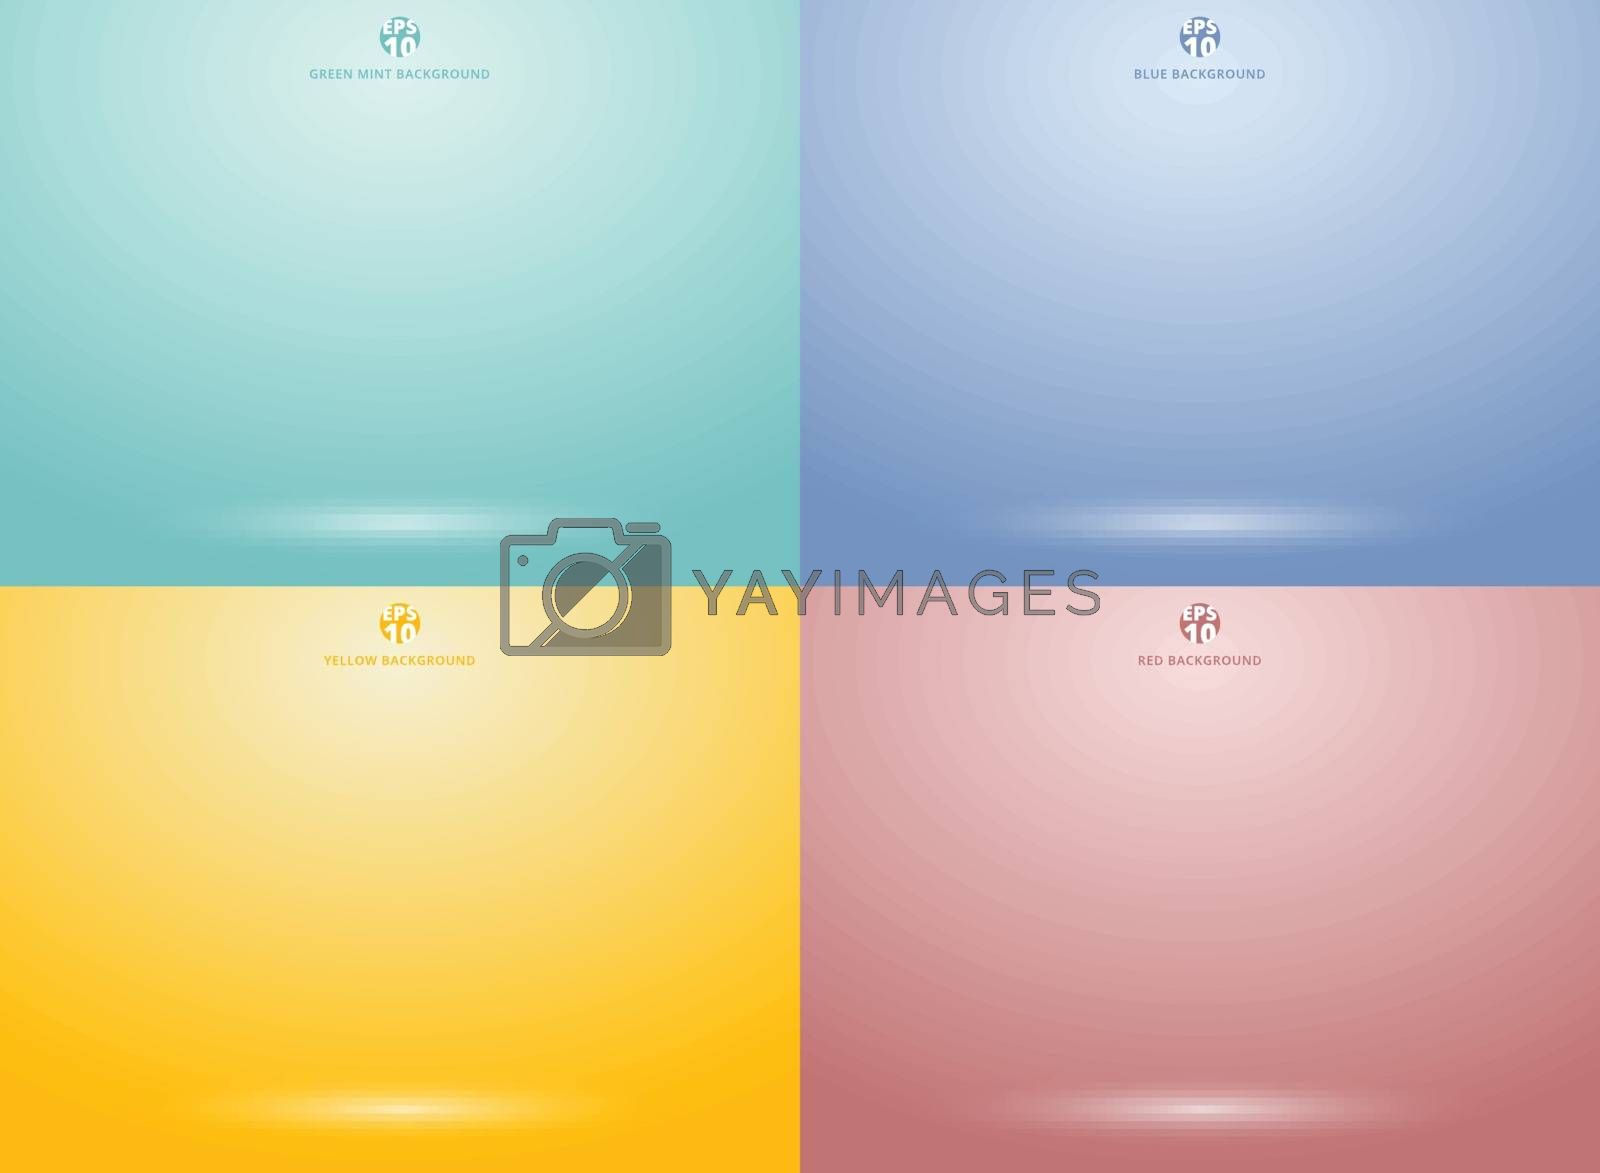 Set of studio room green mint, red, yellow, blue background with lighting well use as Business backdrop, Template mock up for display of product, Vector illustration